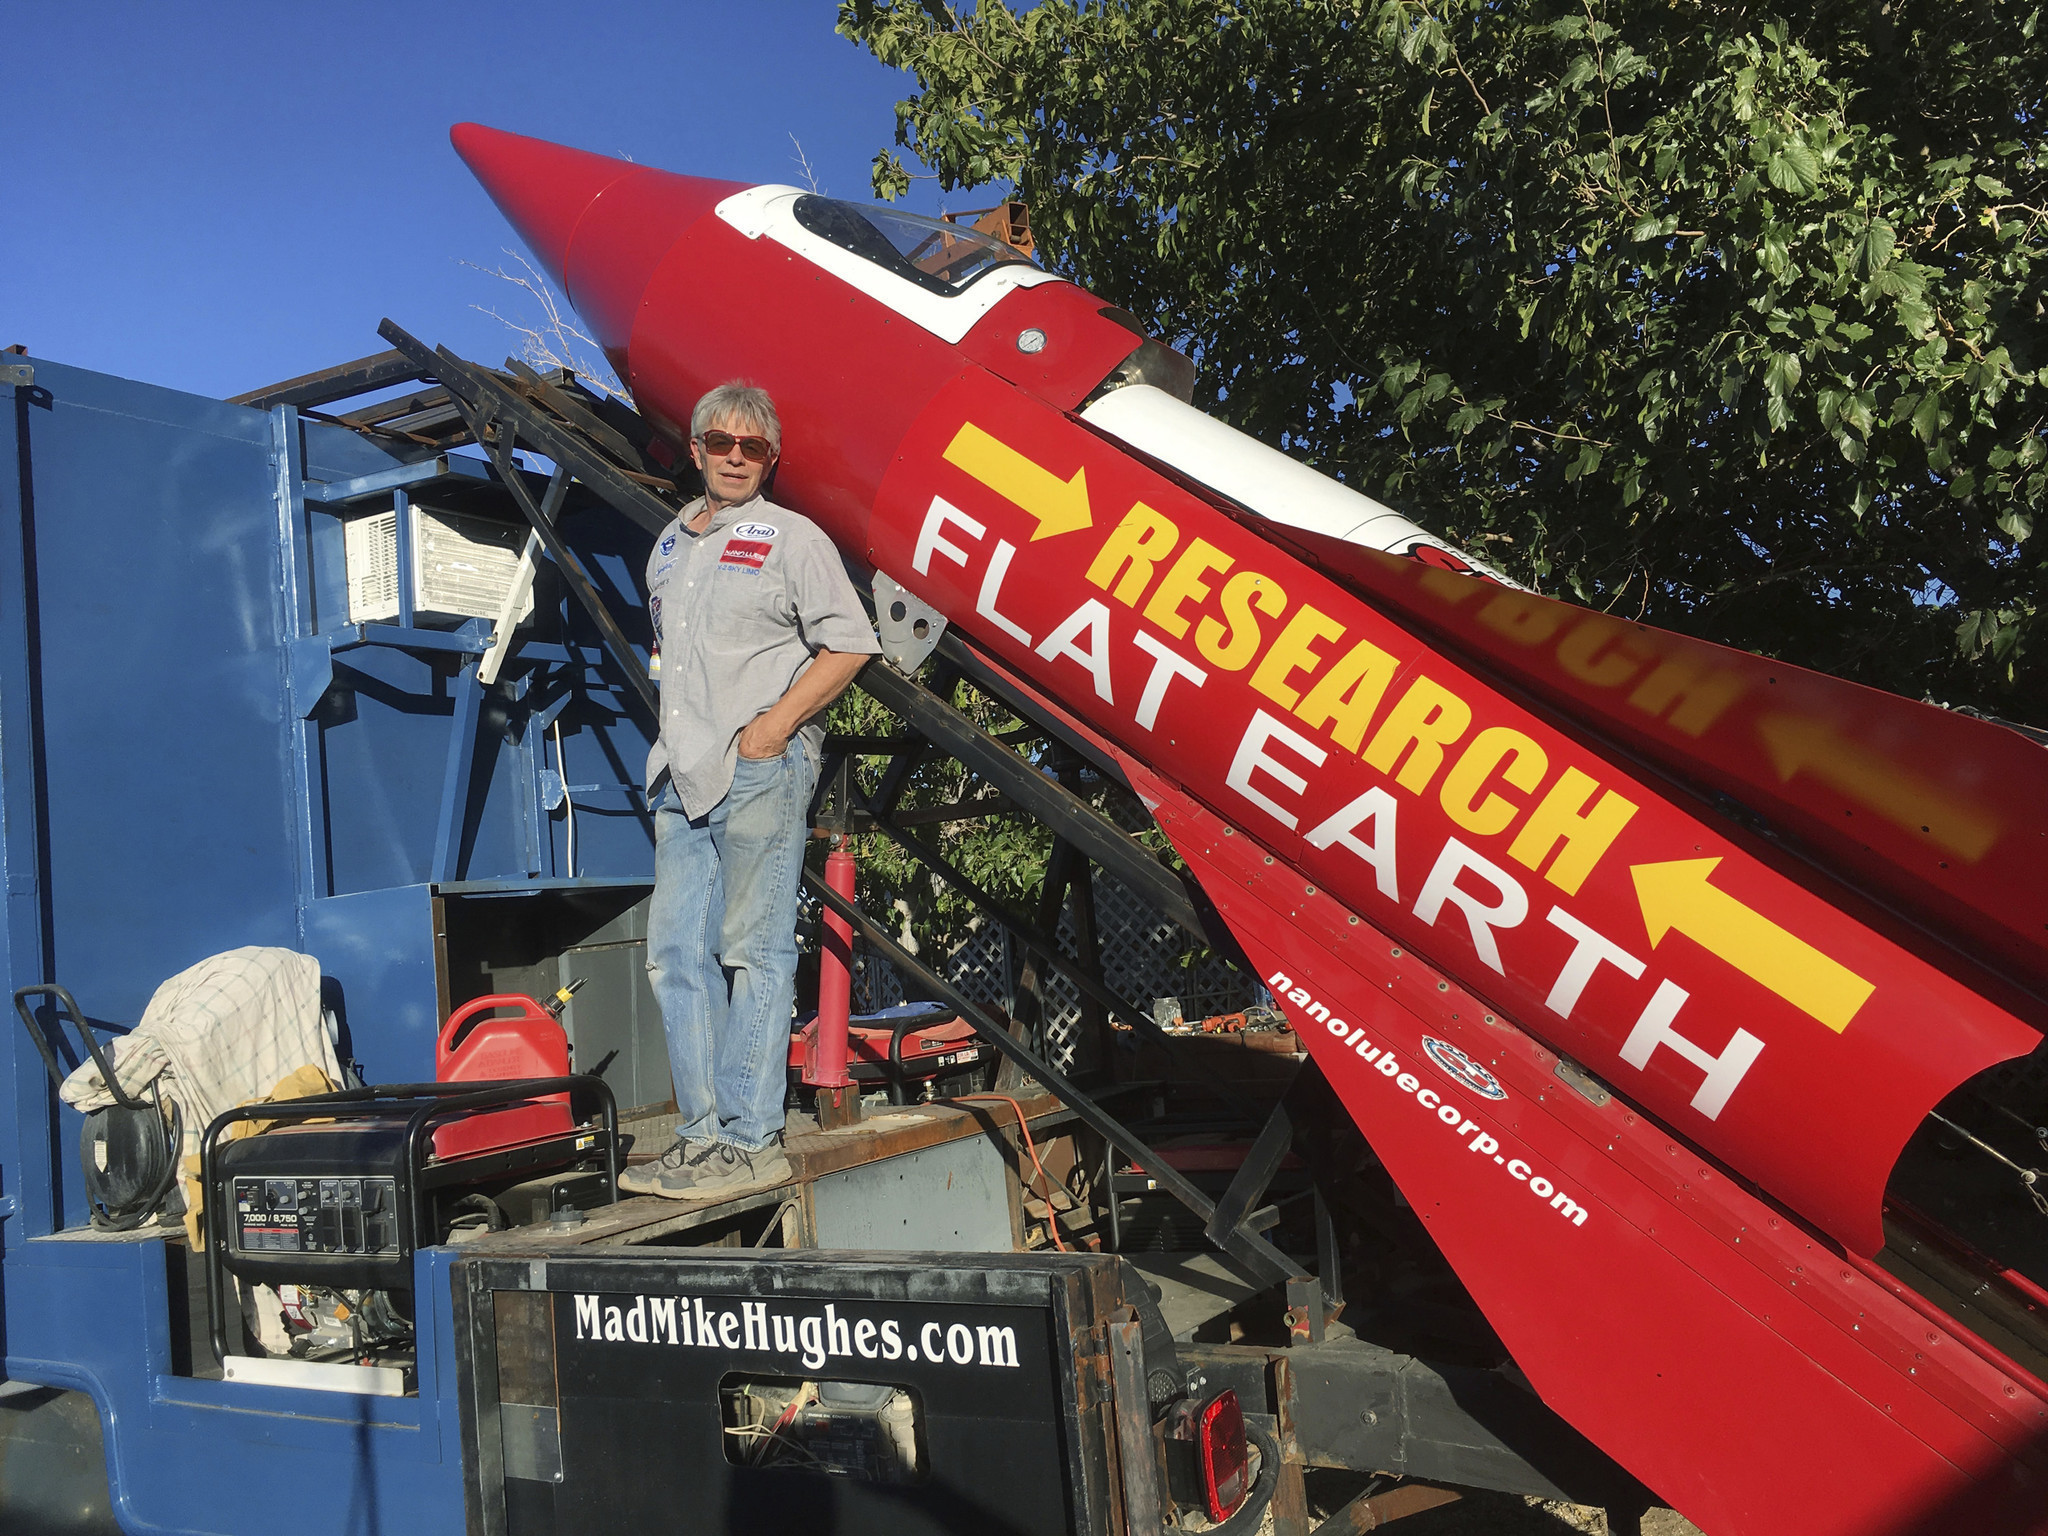 A flat-Earther's plan to launch himself in a homemade rocket just hit a speed bump